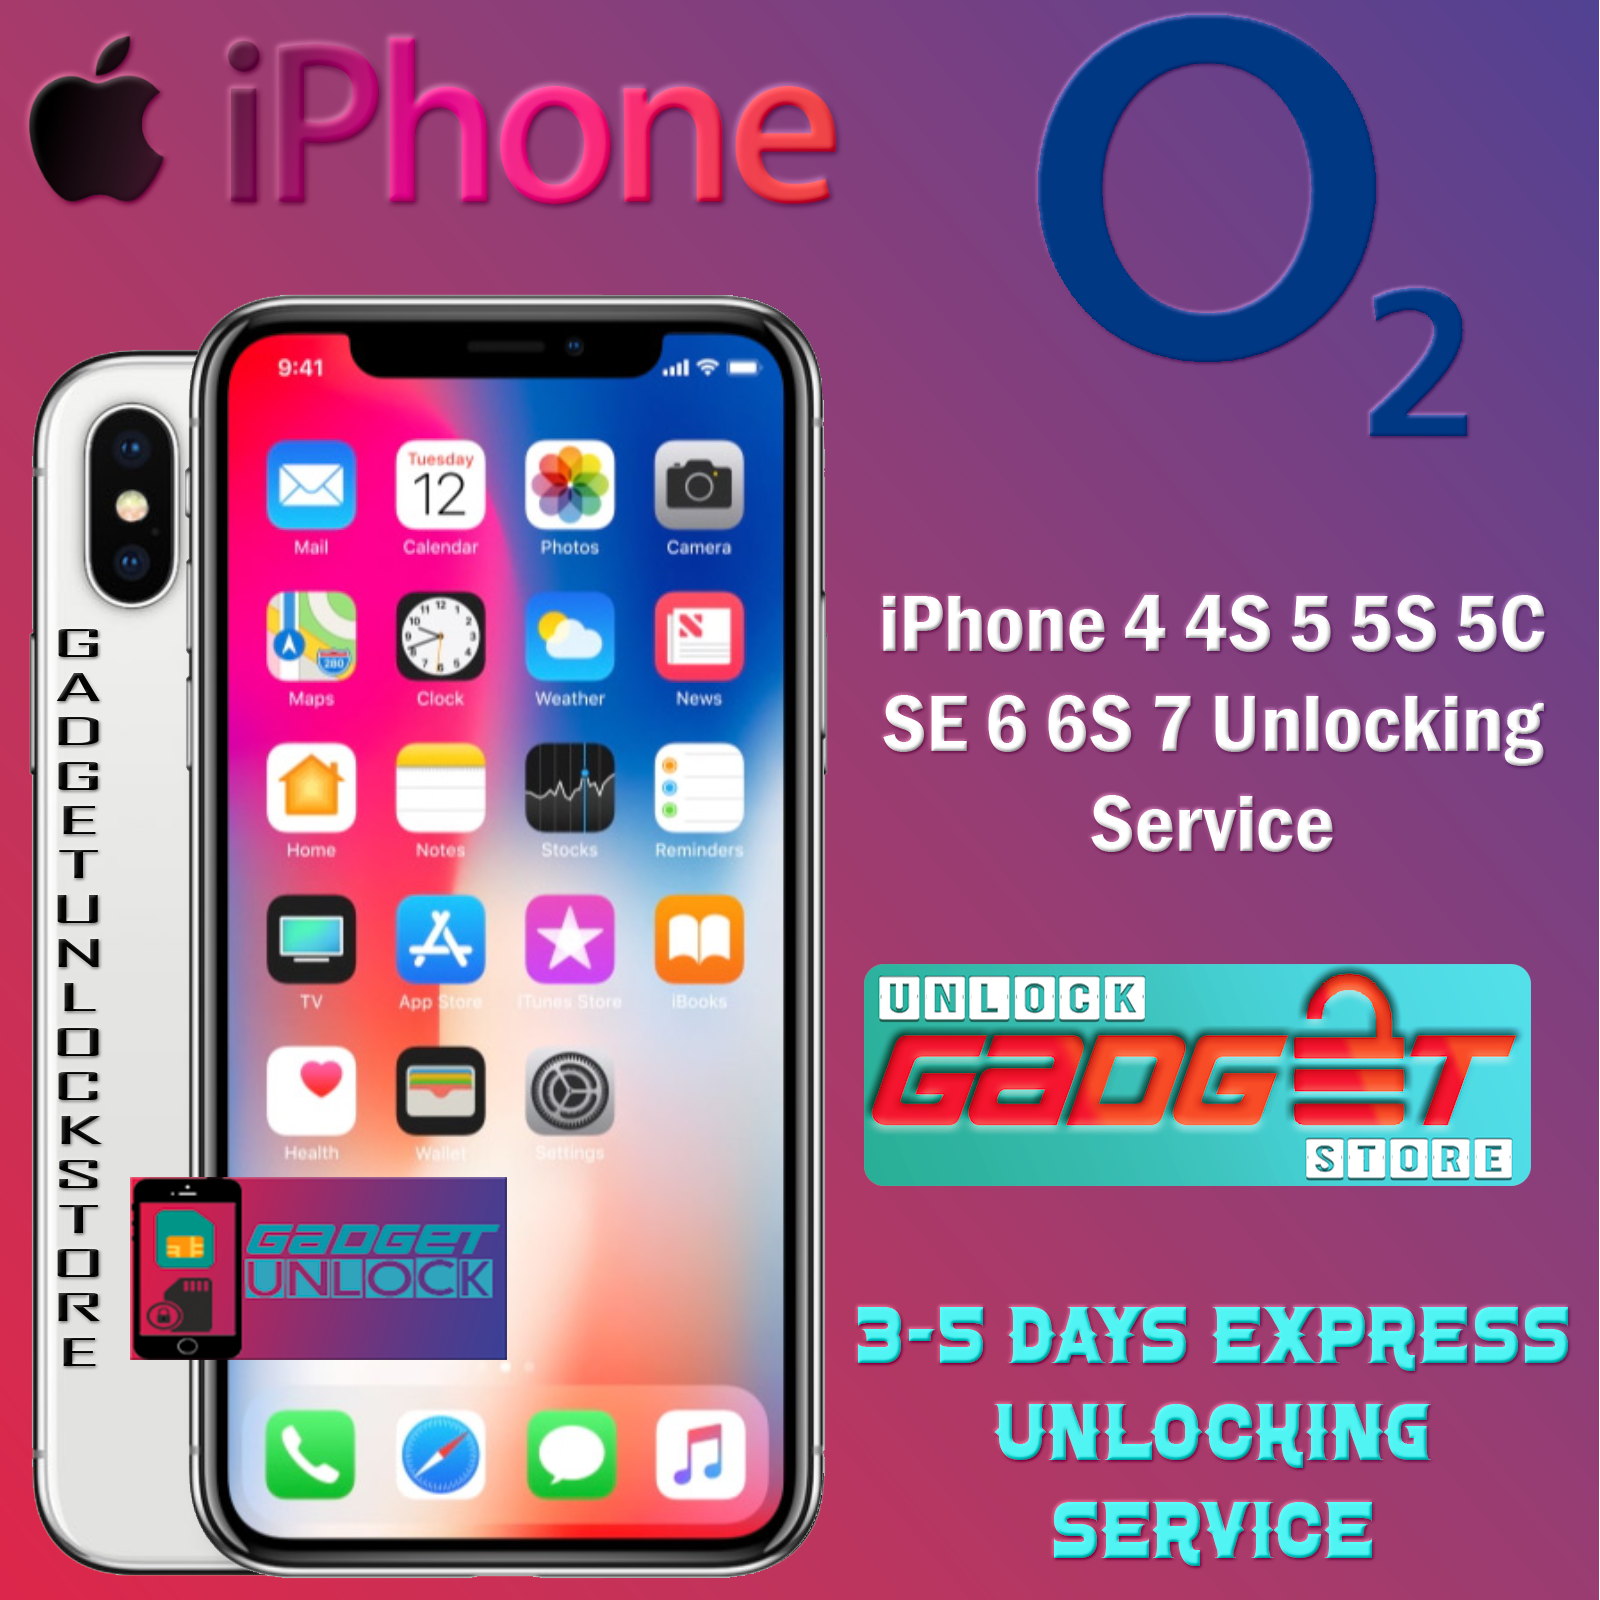 UNLOCK CODE FOR IPHONE 5 5S 5C SE 6 6S 7 8 X XR XS 11 Pro Max O2 TESCO UK UNLOCK 5